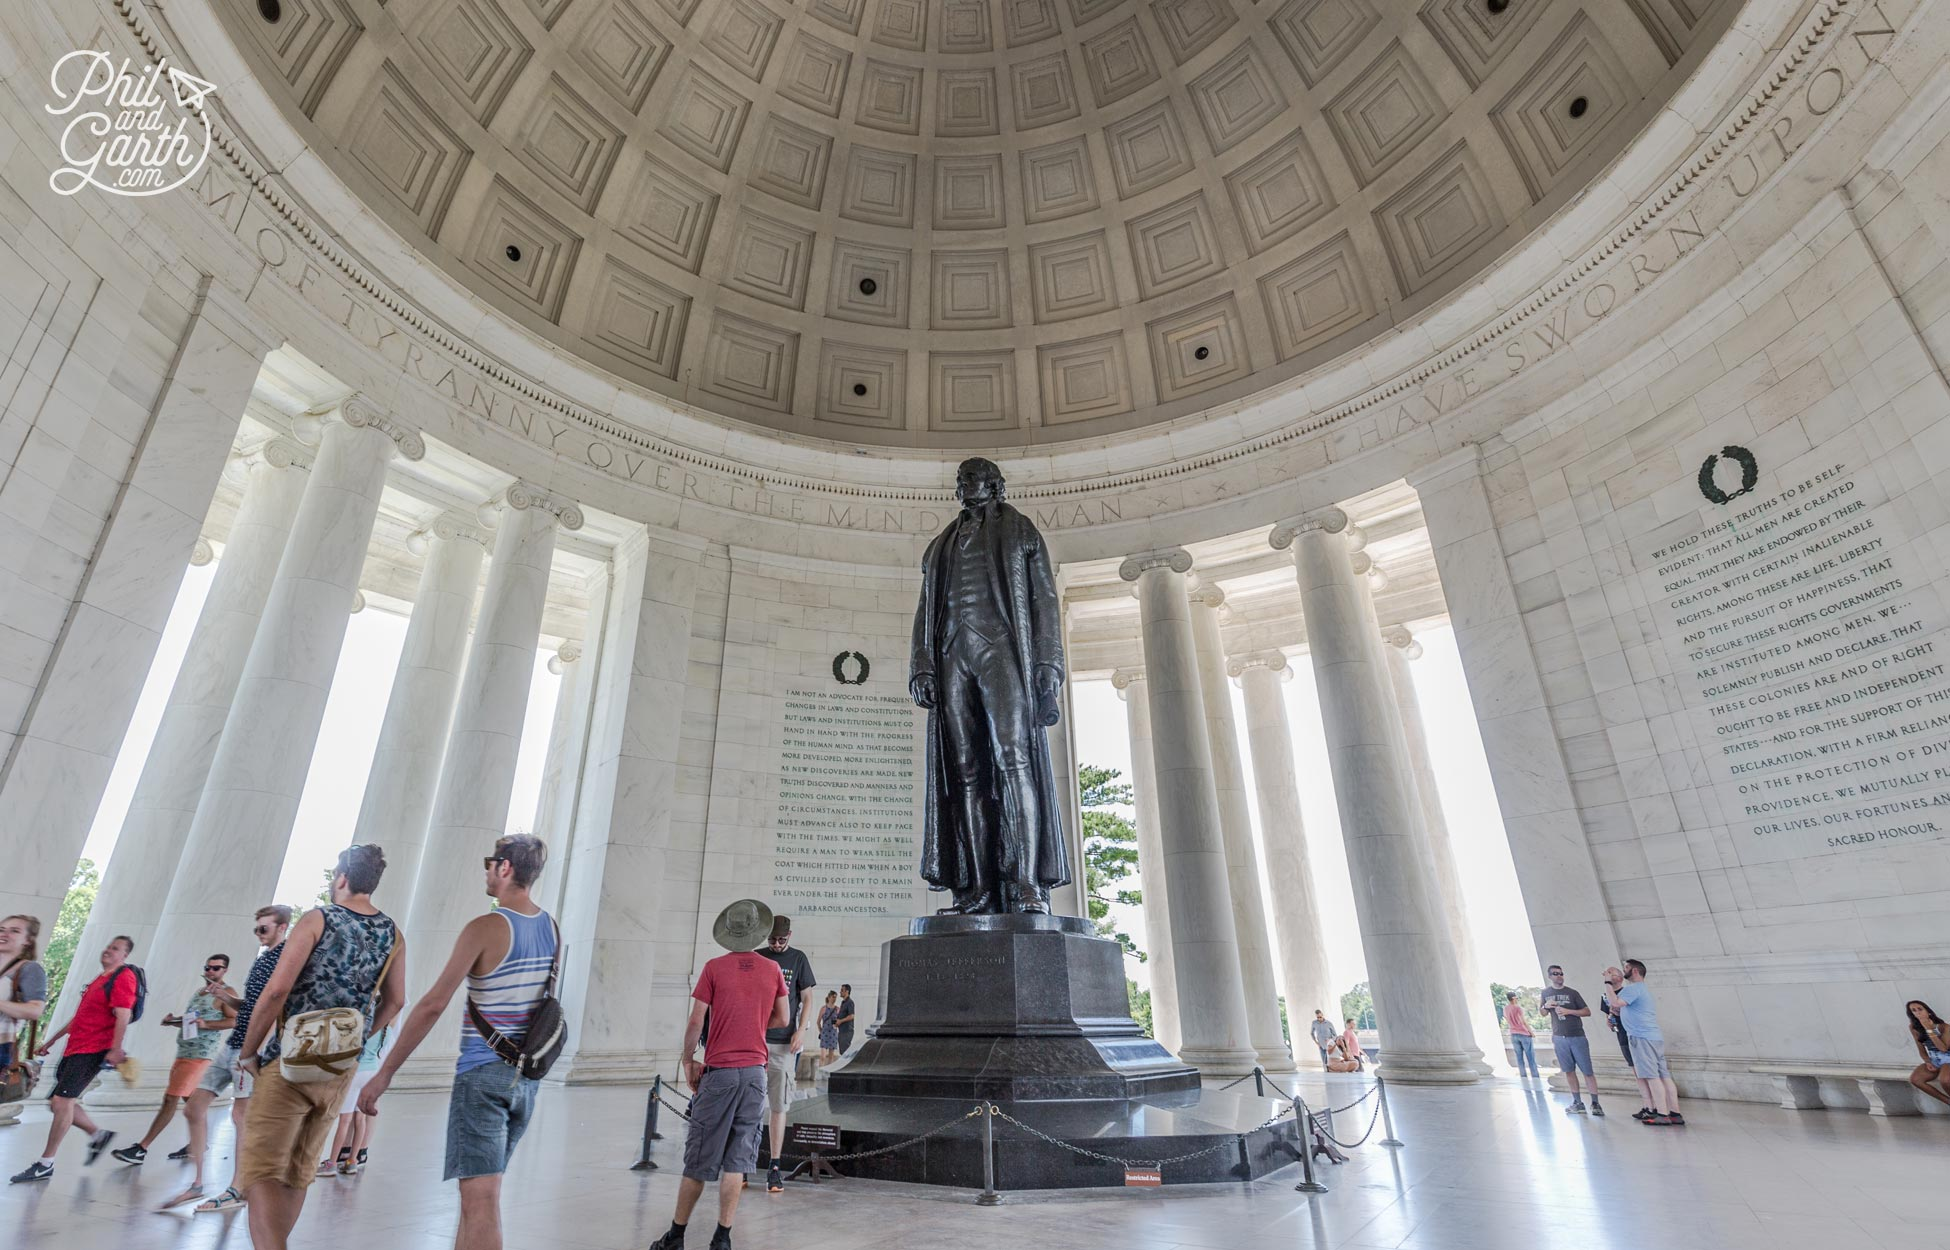 A statue of Thomas Jefferson stands in the middle of the memorial